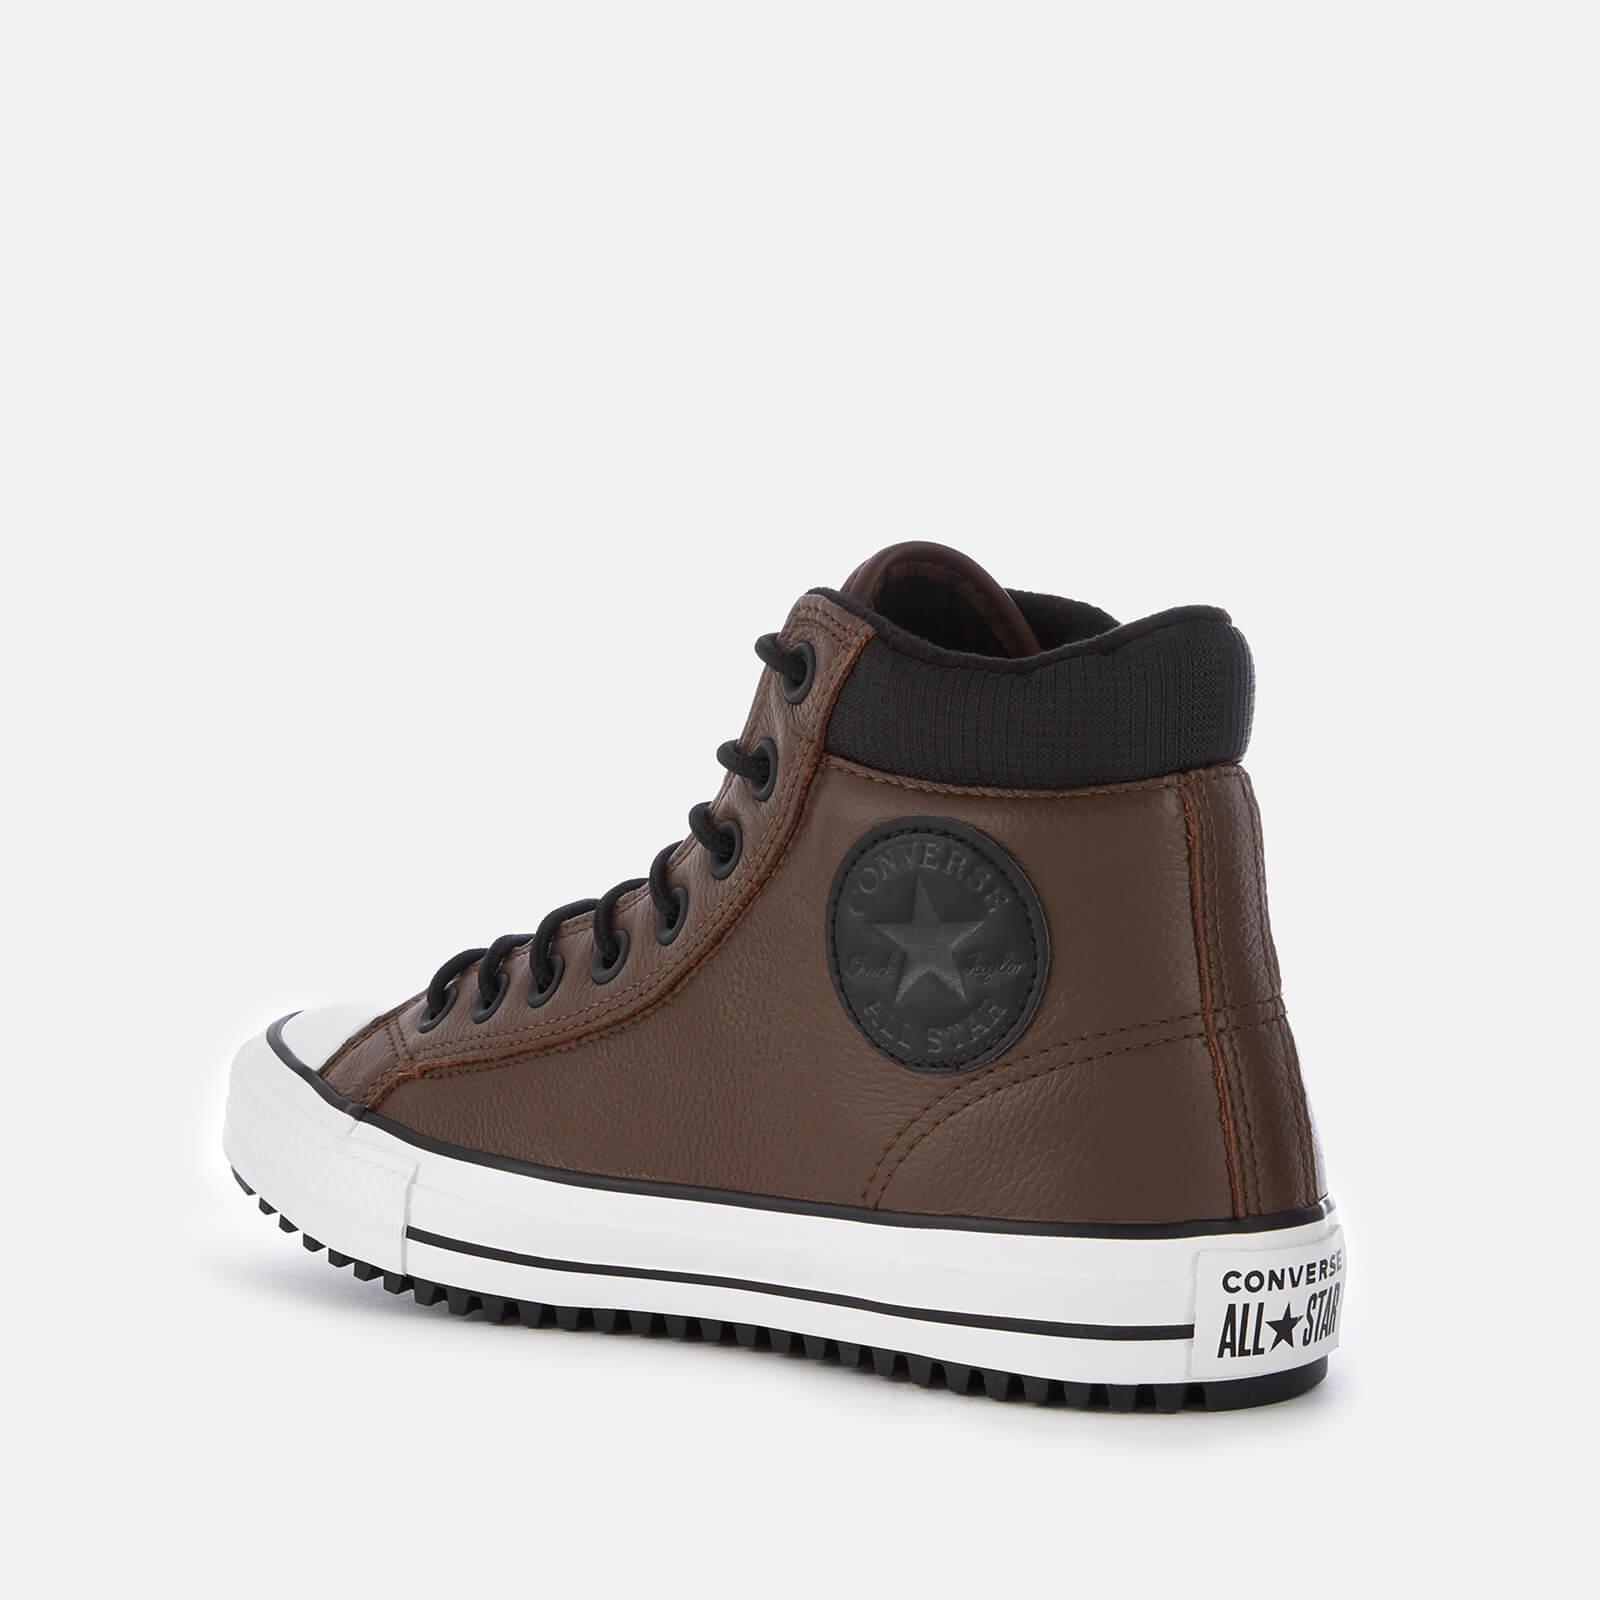 02ee833c3560 Converse - Brown Chuck Taylor All Star Pc Hi-top Boots for Men - Lyst. View  fullscreen